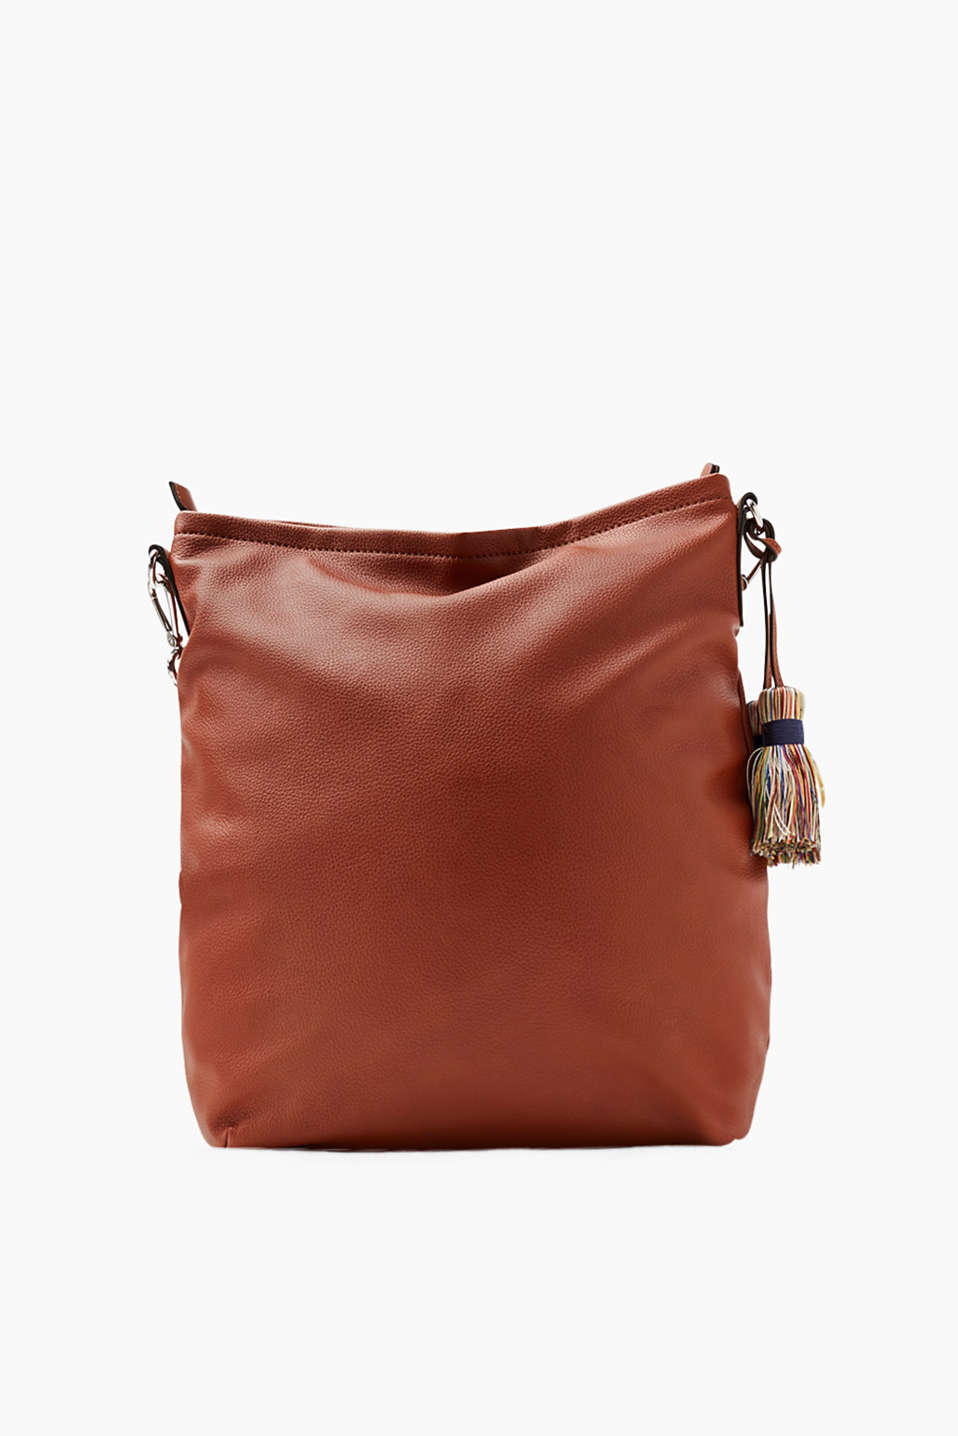 Esprit - Trendige Hobo Bag in Leder-Optik